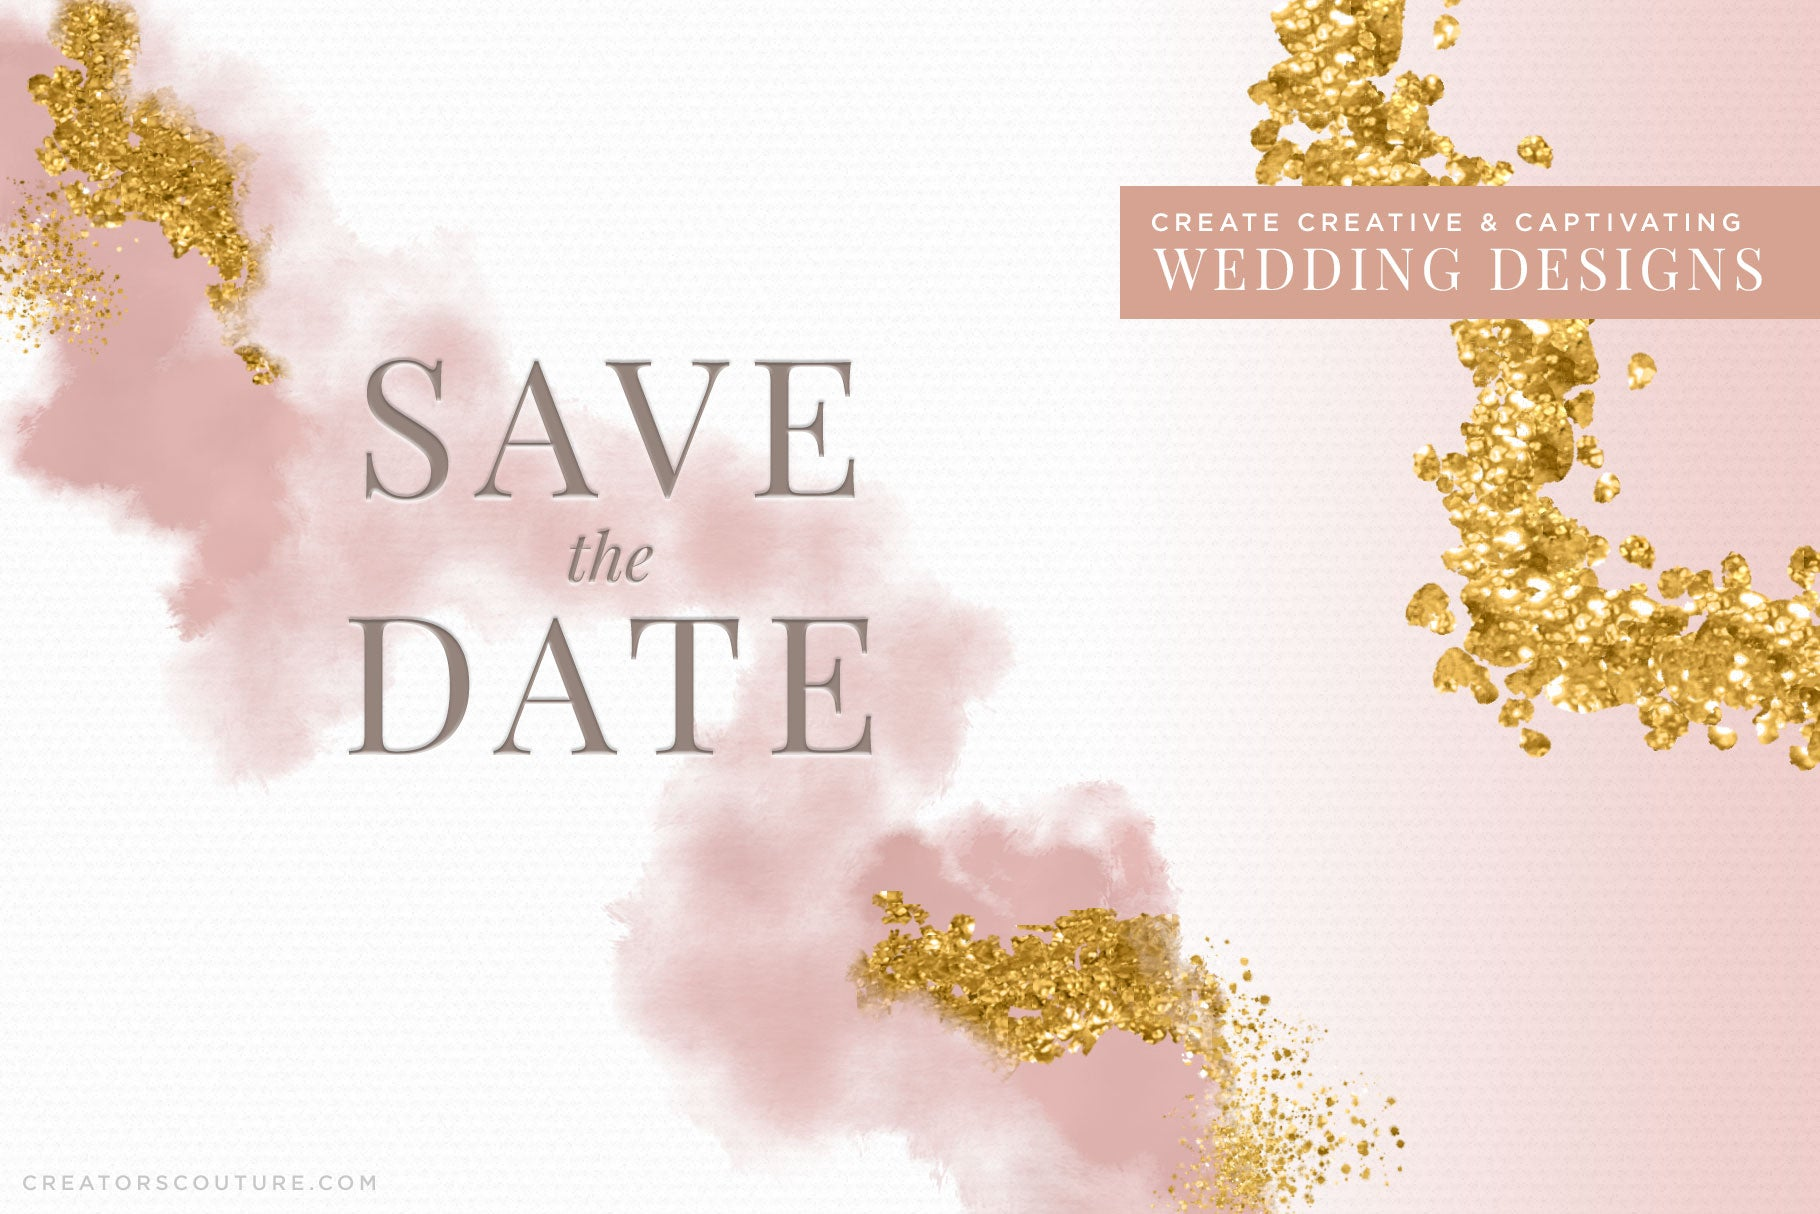 24k liquid, metallic gold photoshop brush preview, wedding design sample